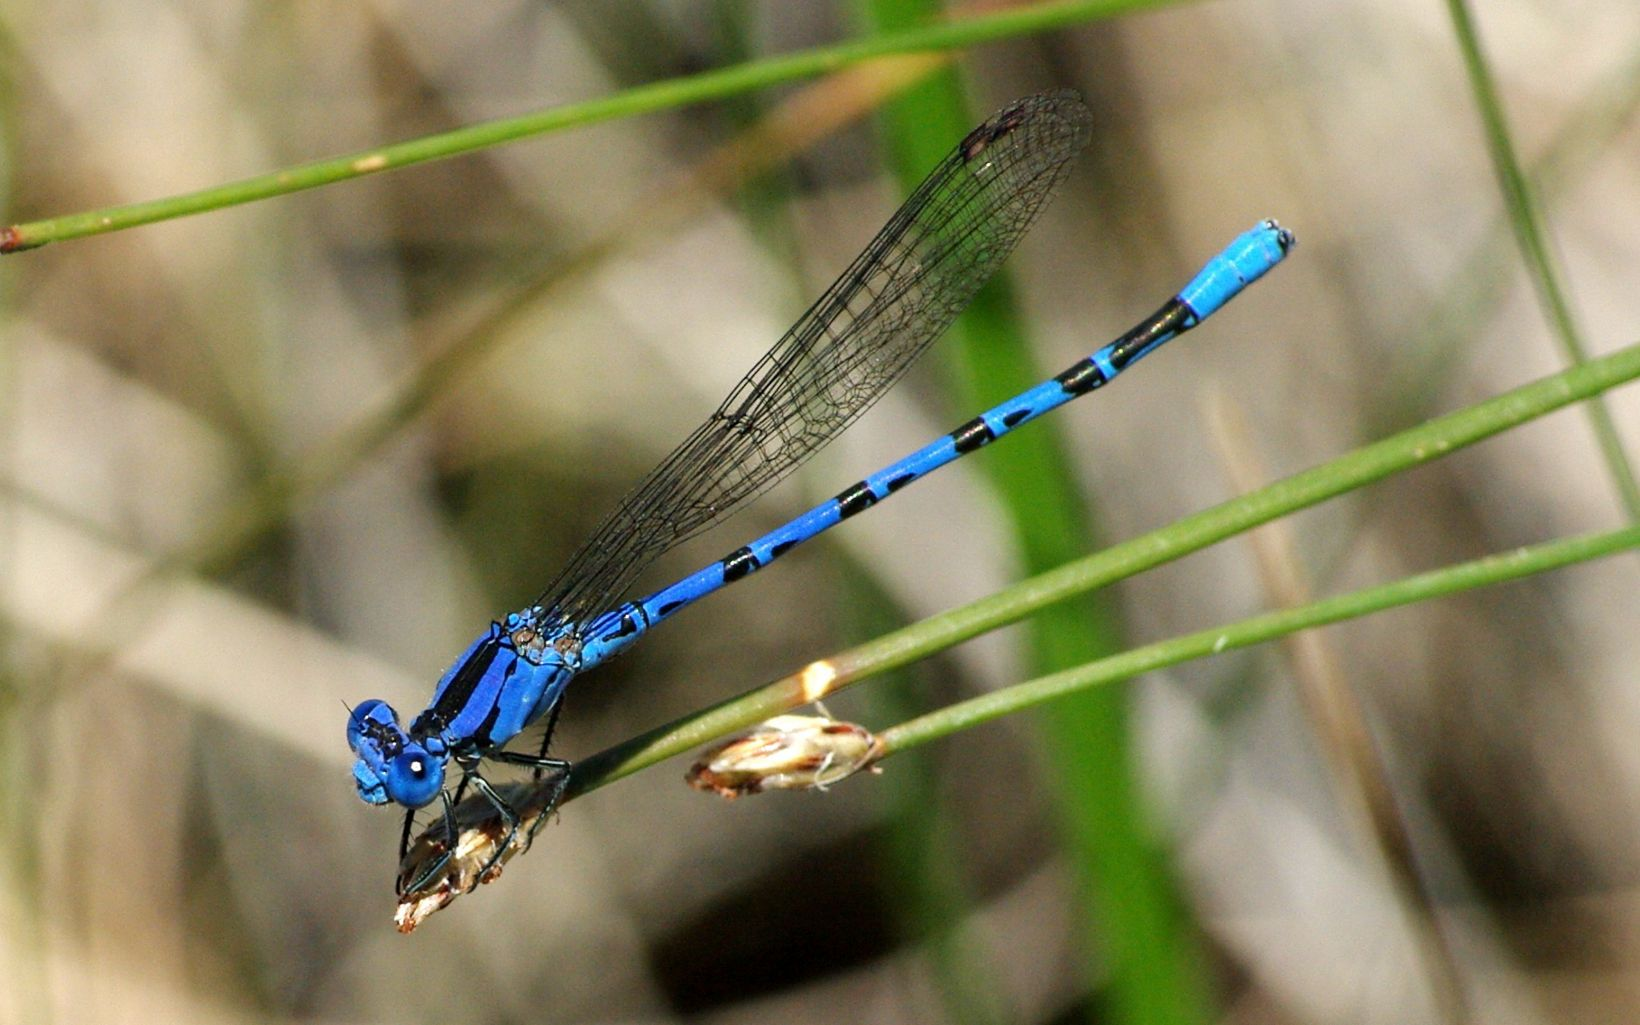 Aquatic insects like the damselfly use GDEs for part of their life cycle.